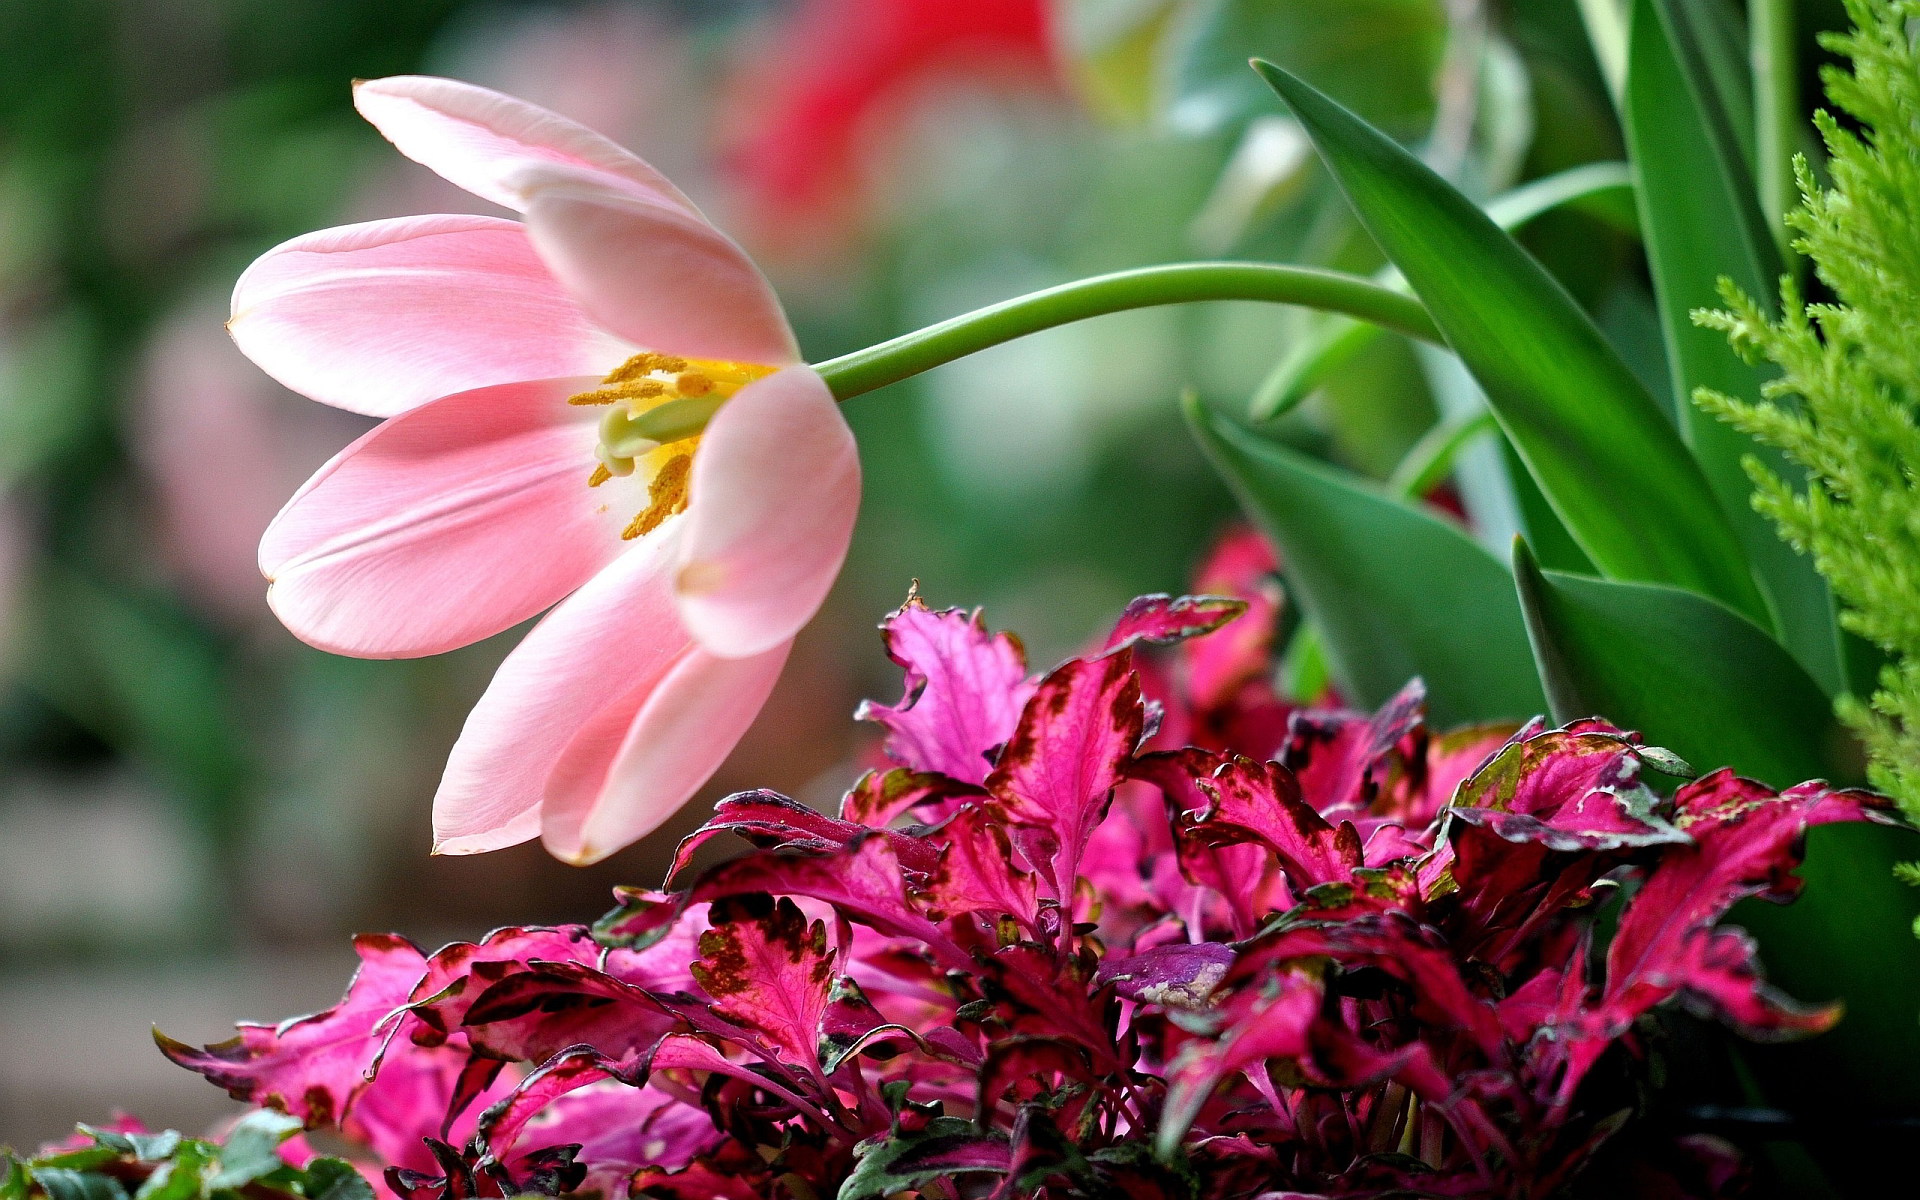 Pink flower background hd desktop wallpapers 4k hd - Red flower desktop wallpaper ...